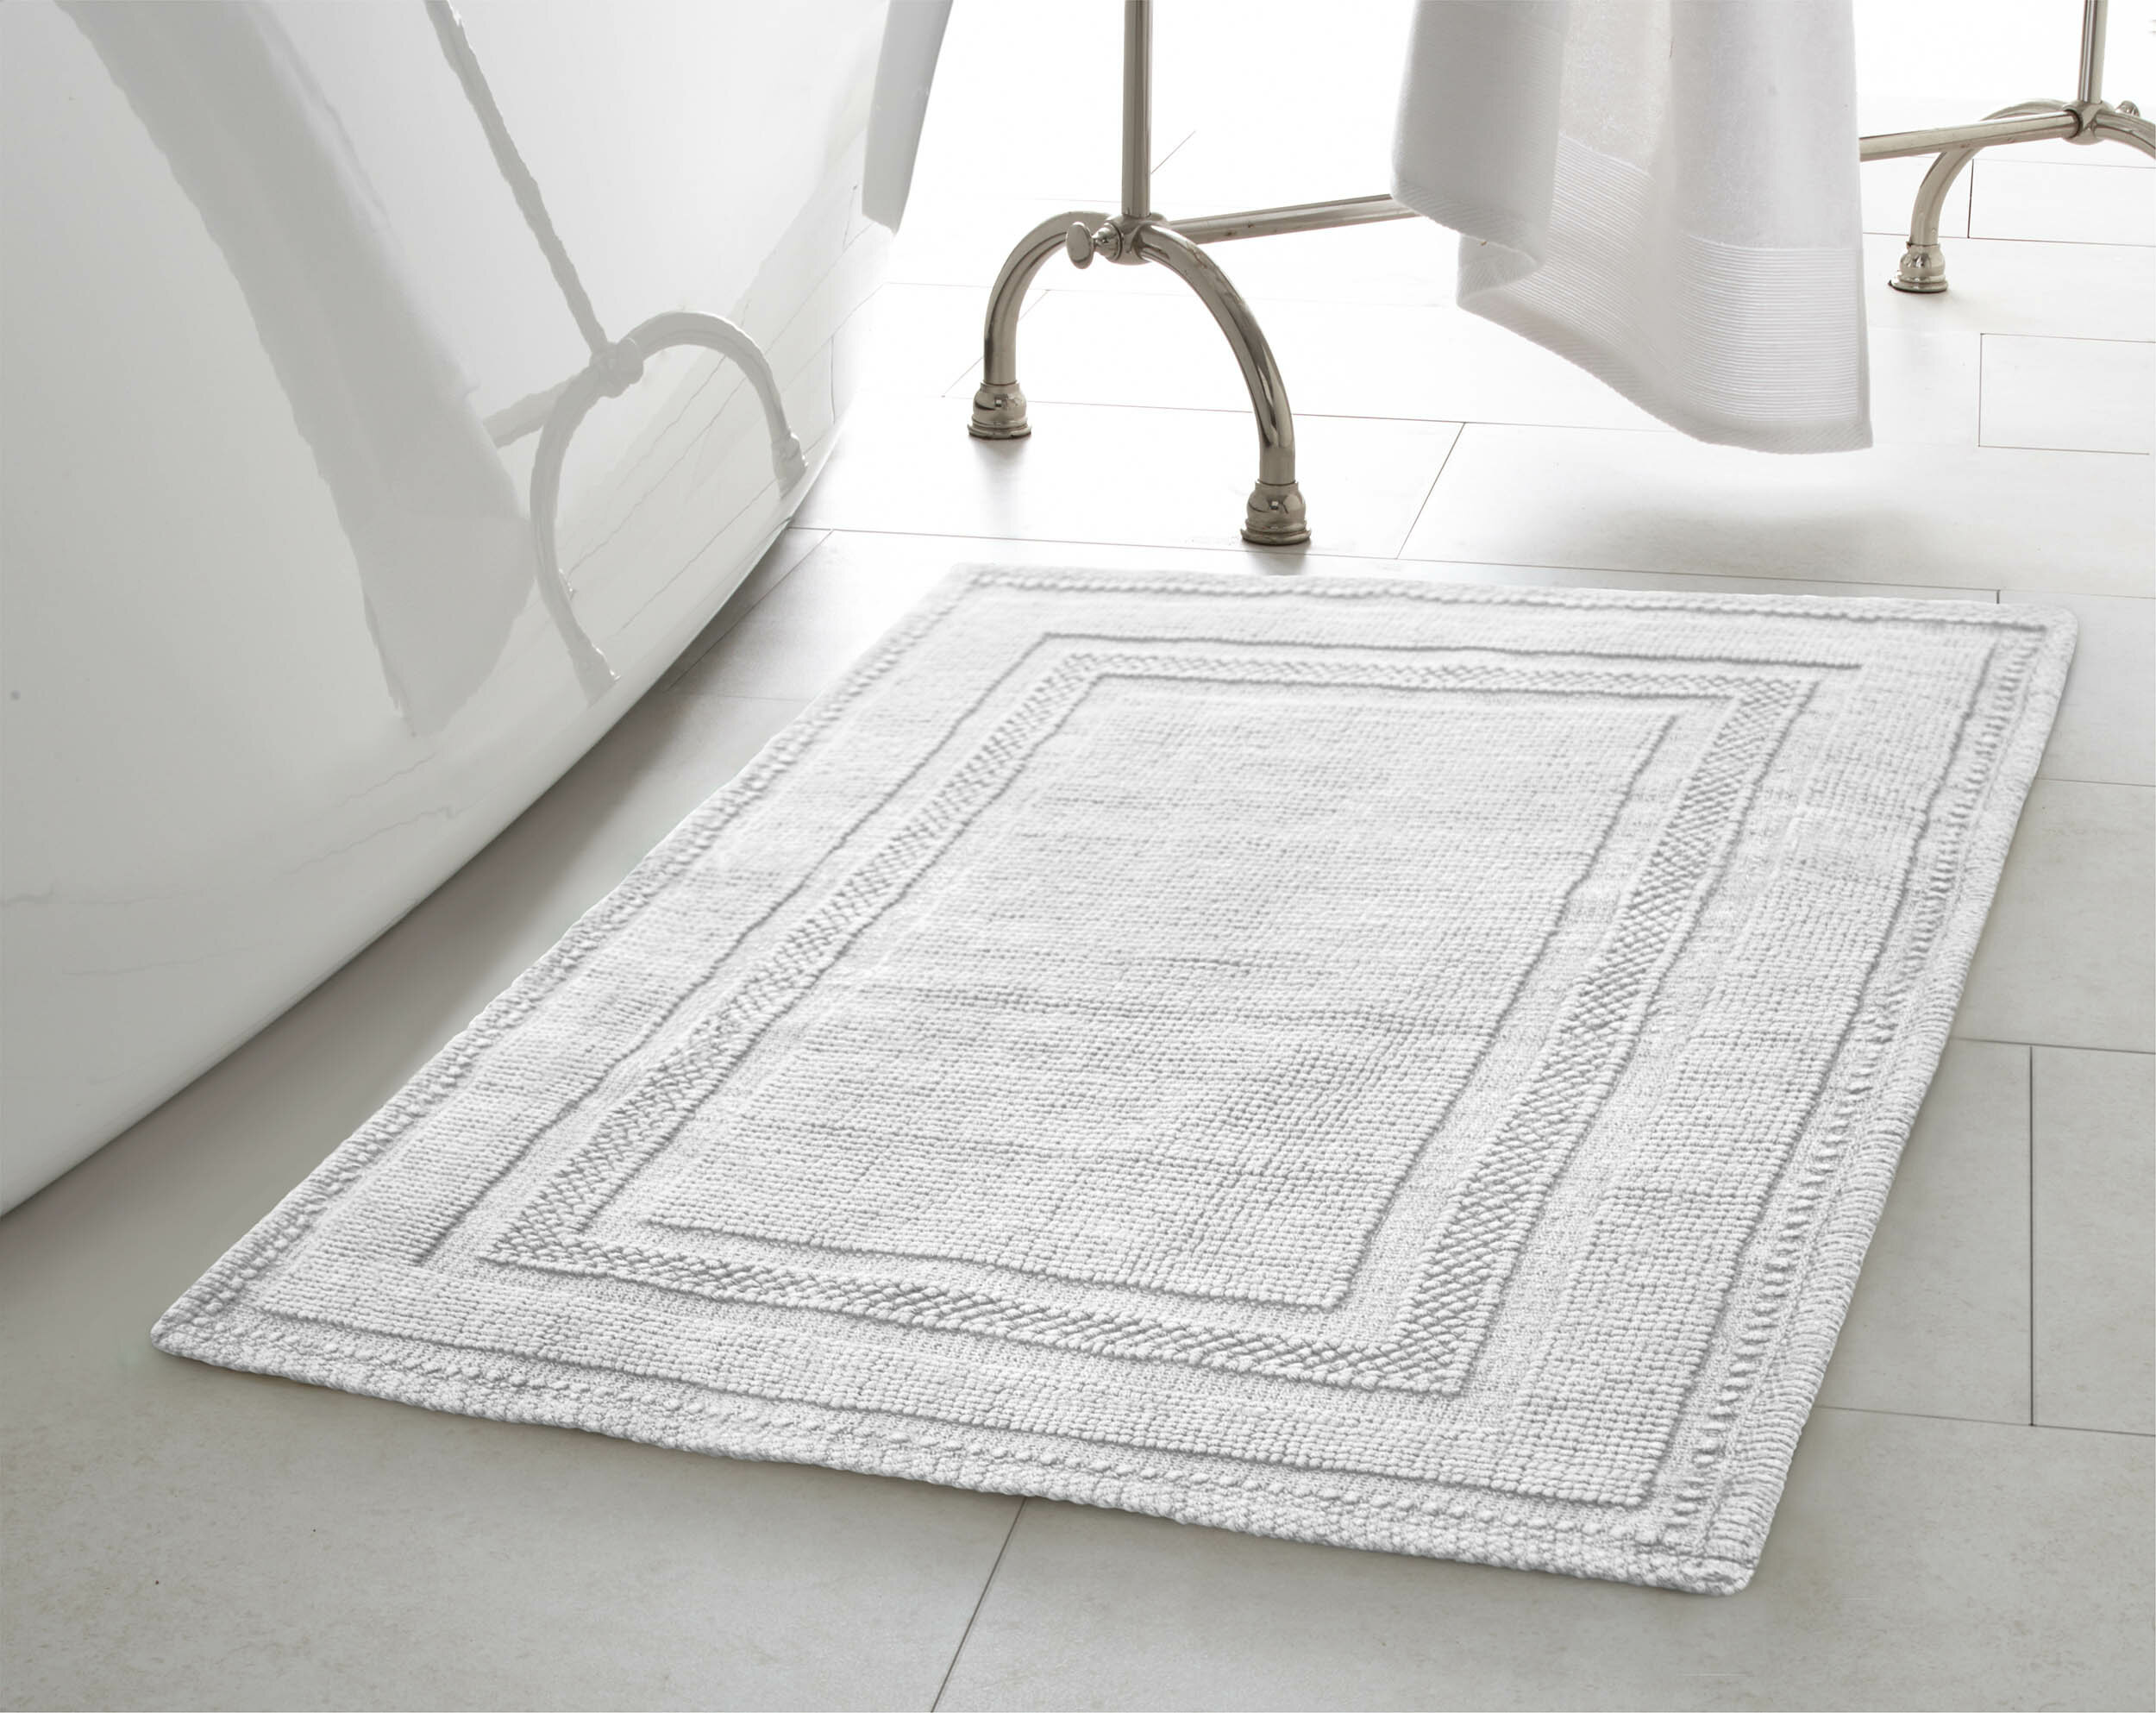 White Yellow Gold Bath Rugs Mats You Ll Love In 2021 Wayfair